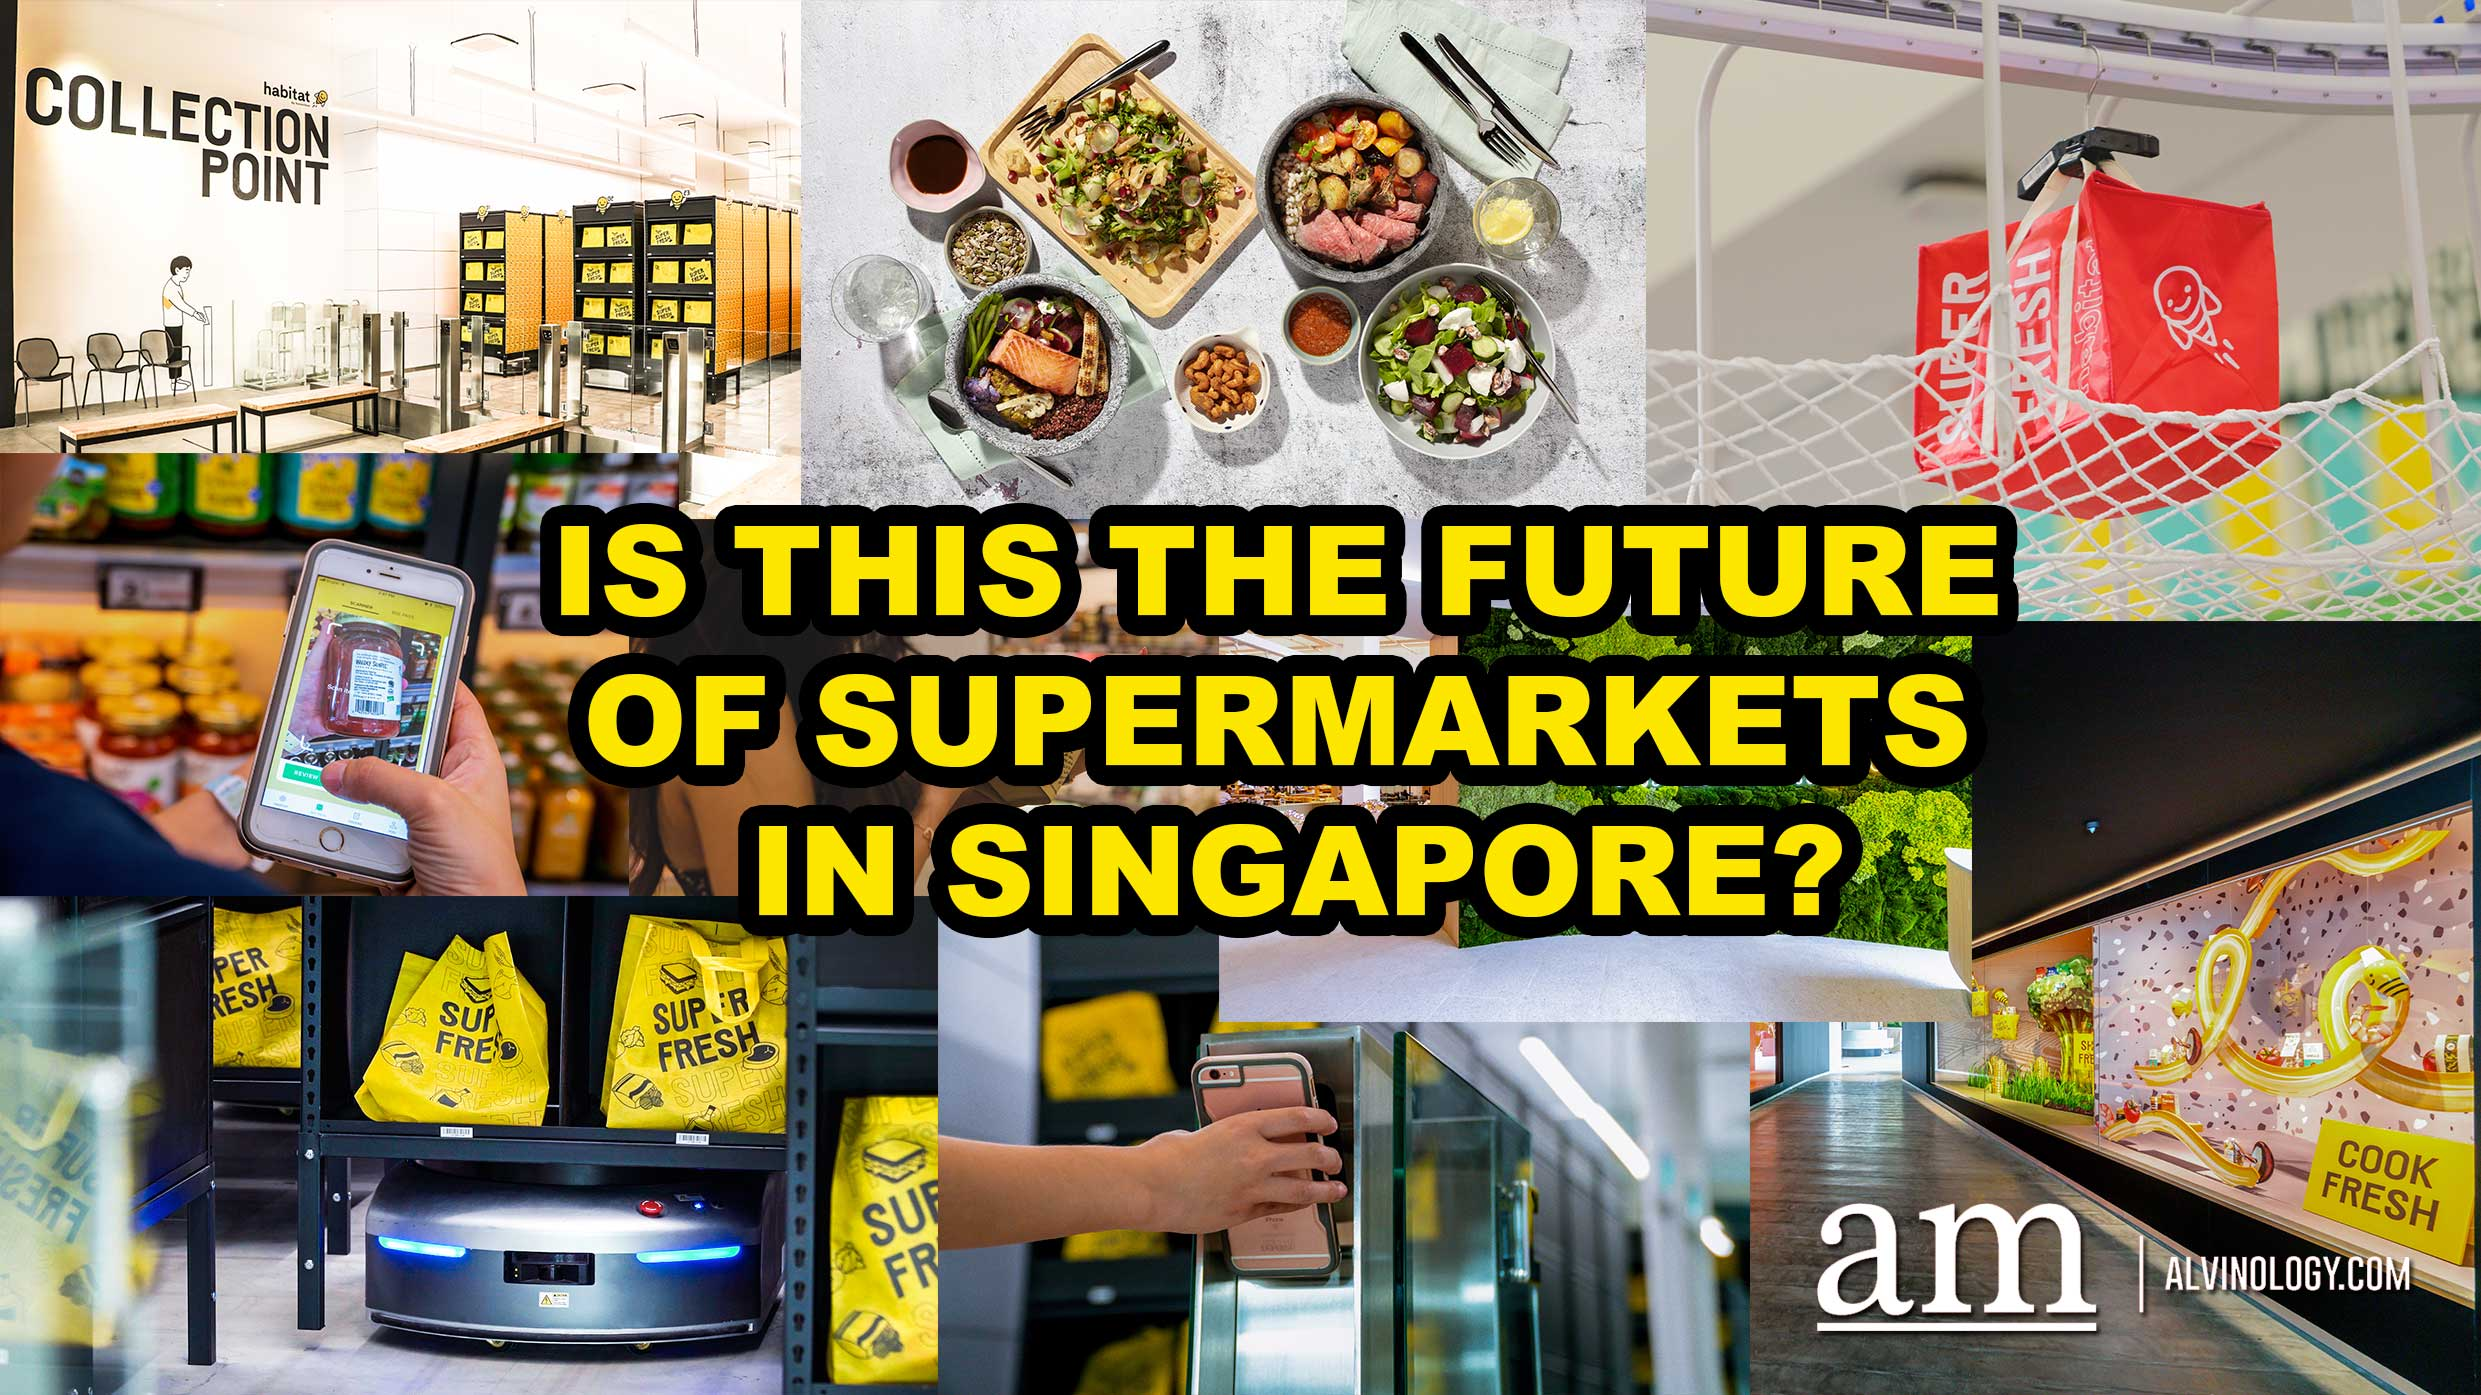 habitat by honestbee - first smart supermarket and F&B concept for the future in Singapore - Alvinology